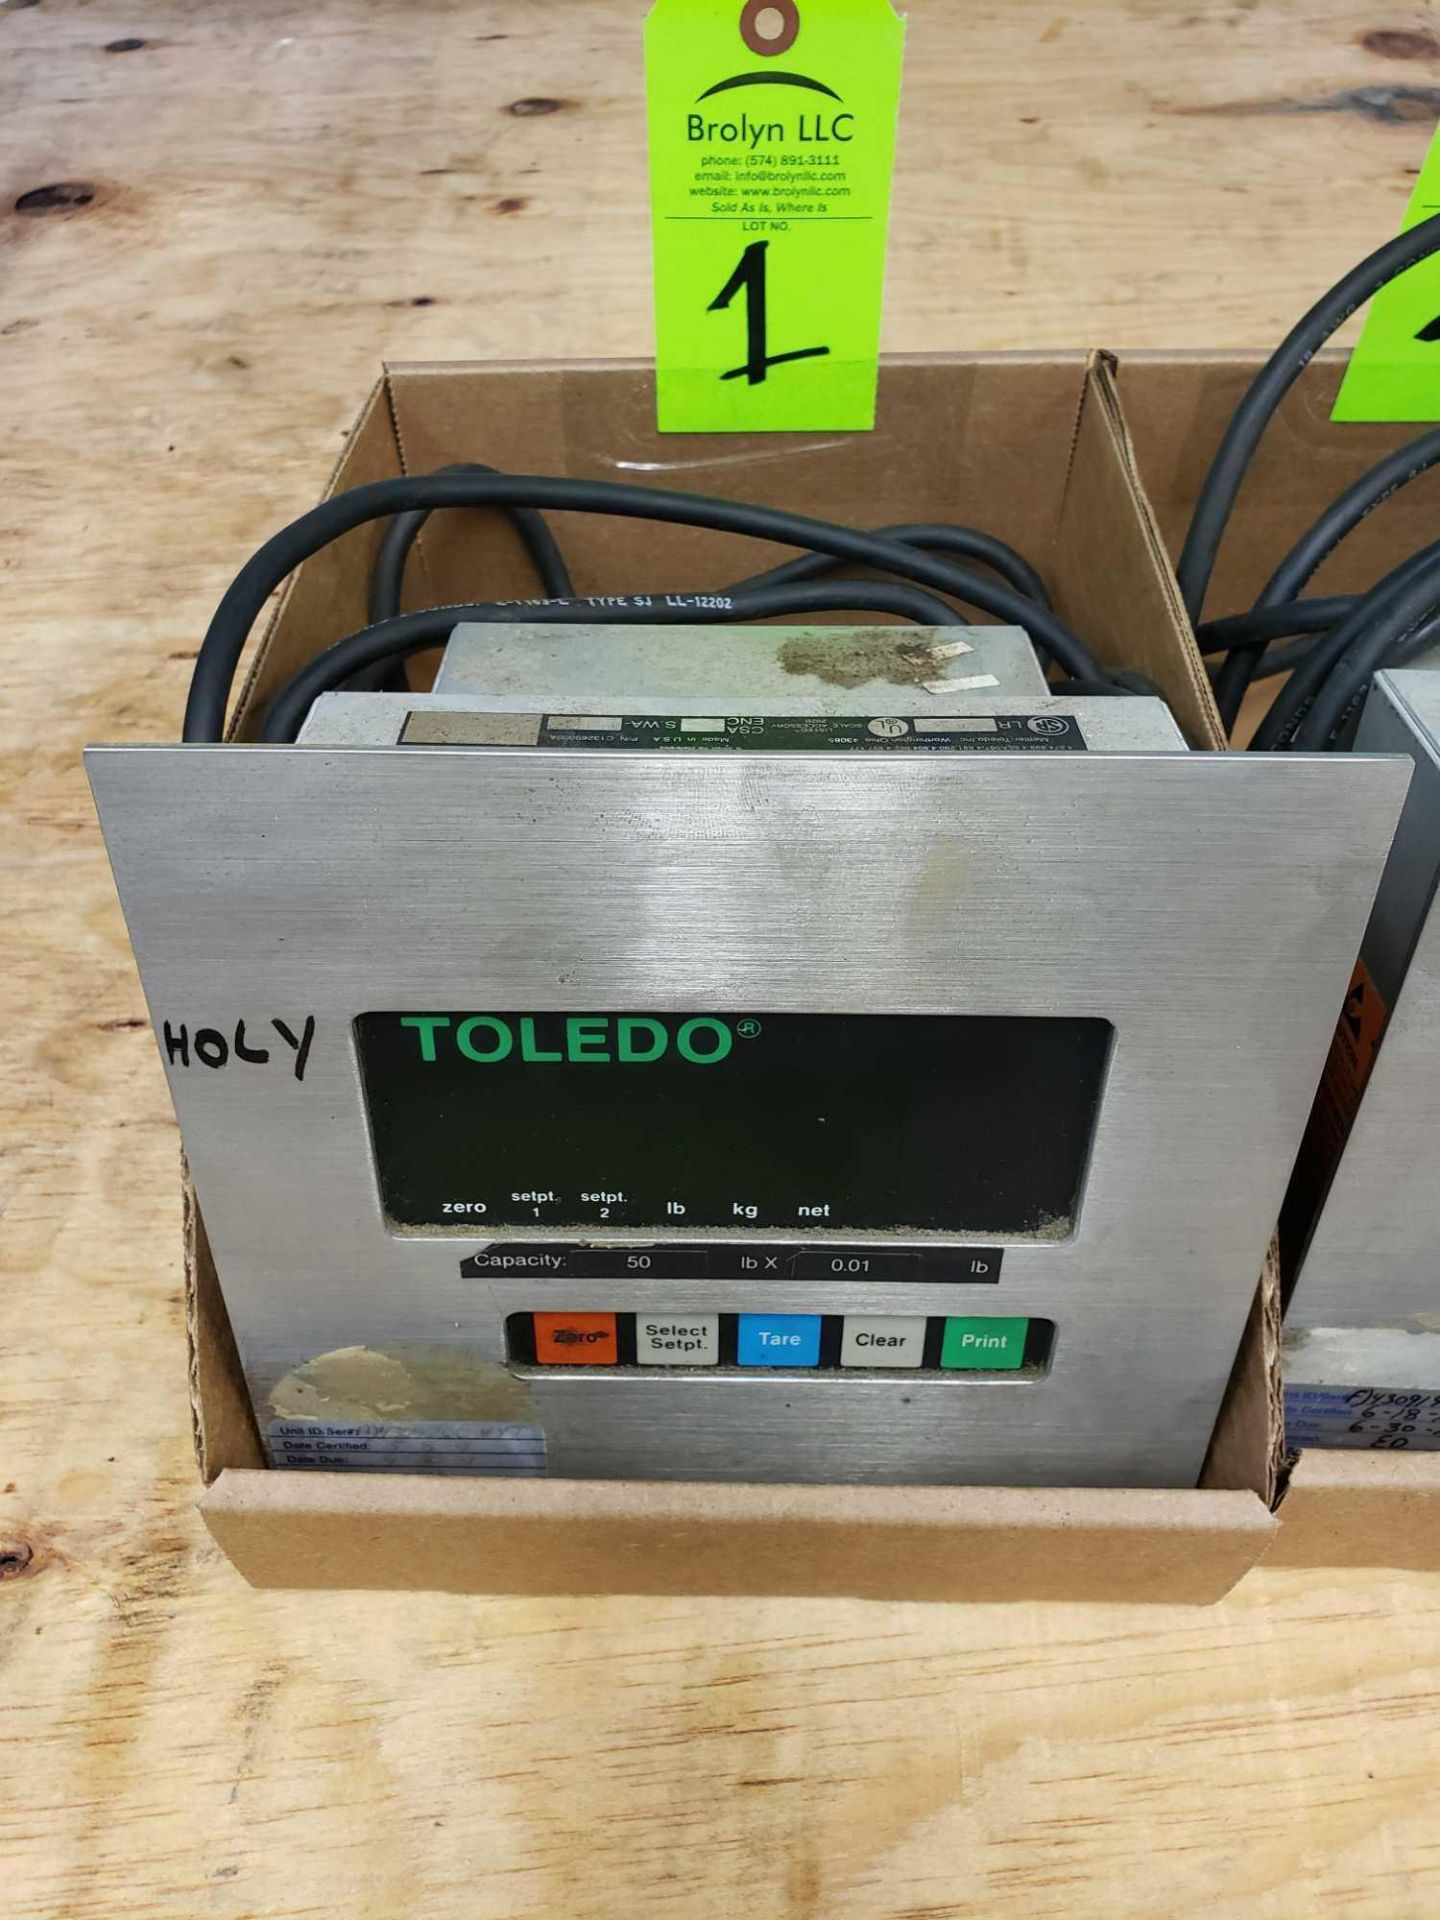 Lot 1 - Toledo scale display model 8510